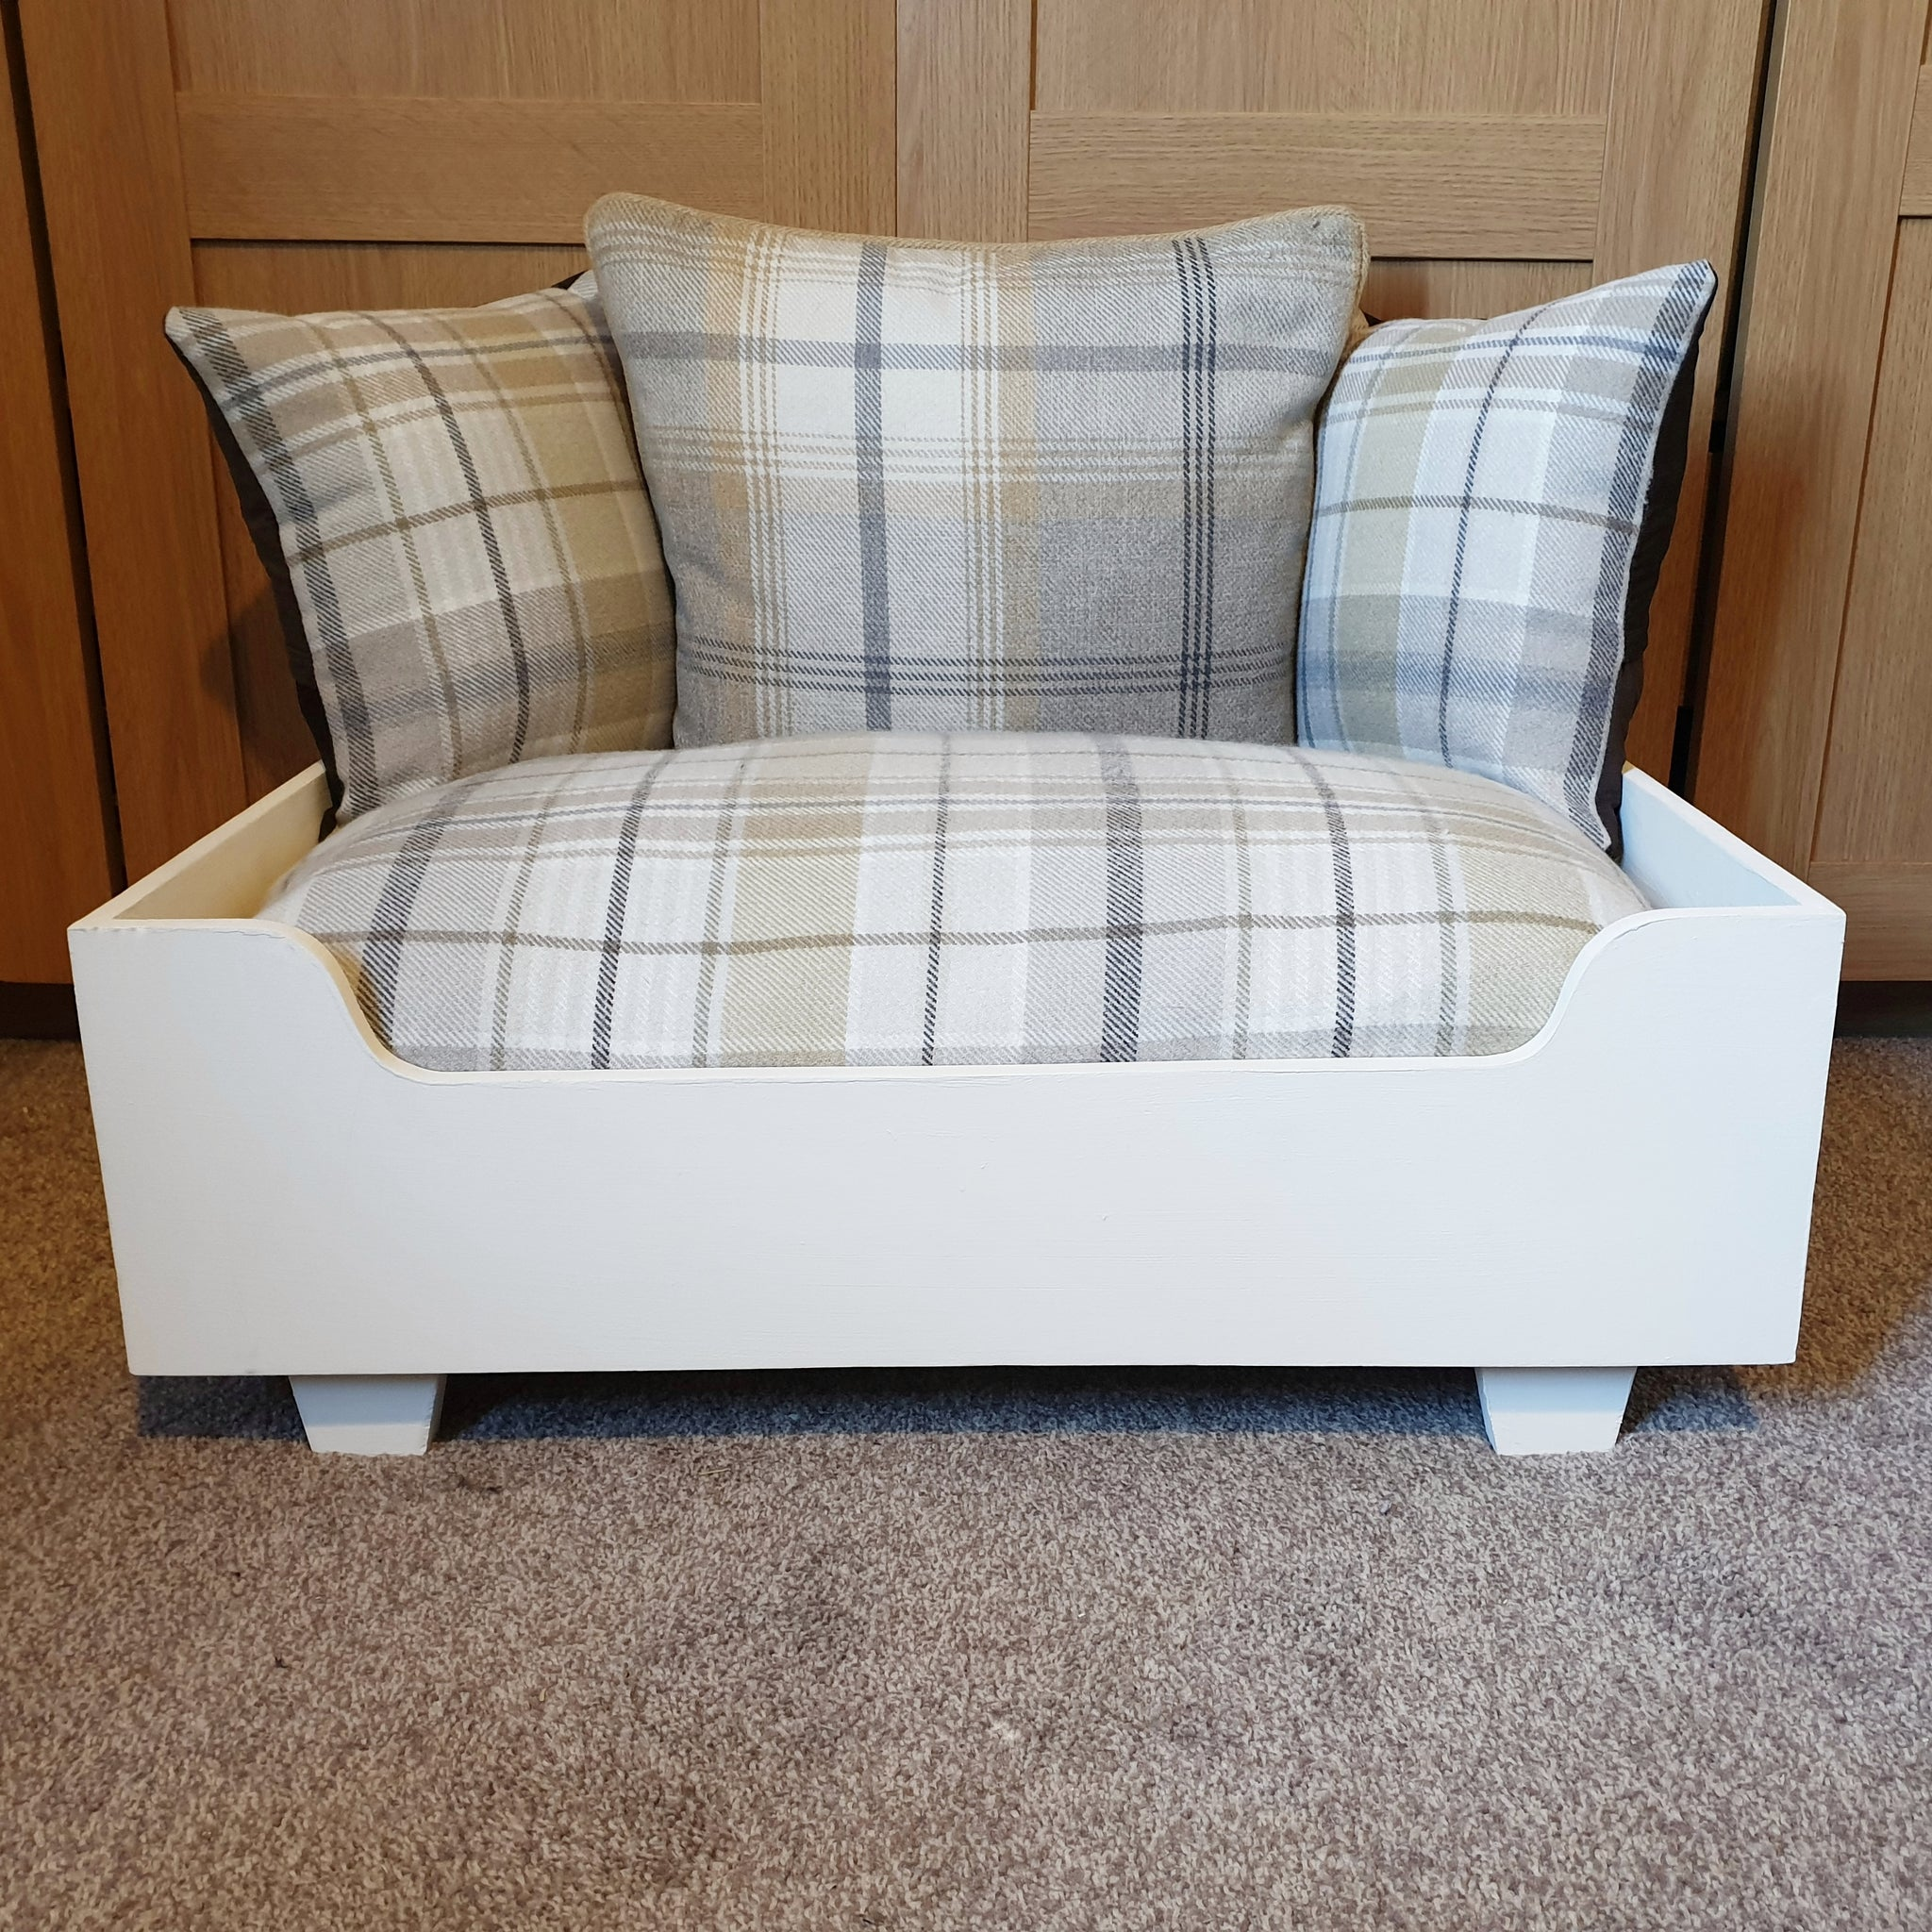 Dog Bed - Cream frame with cream and ochre tartan mattress and pillows